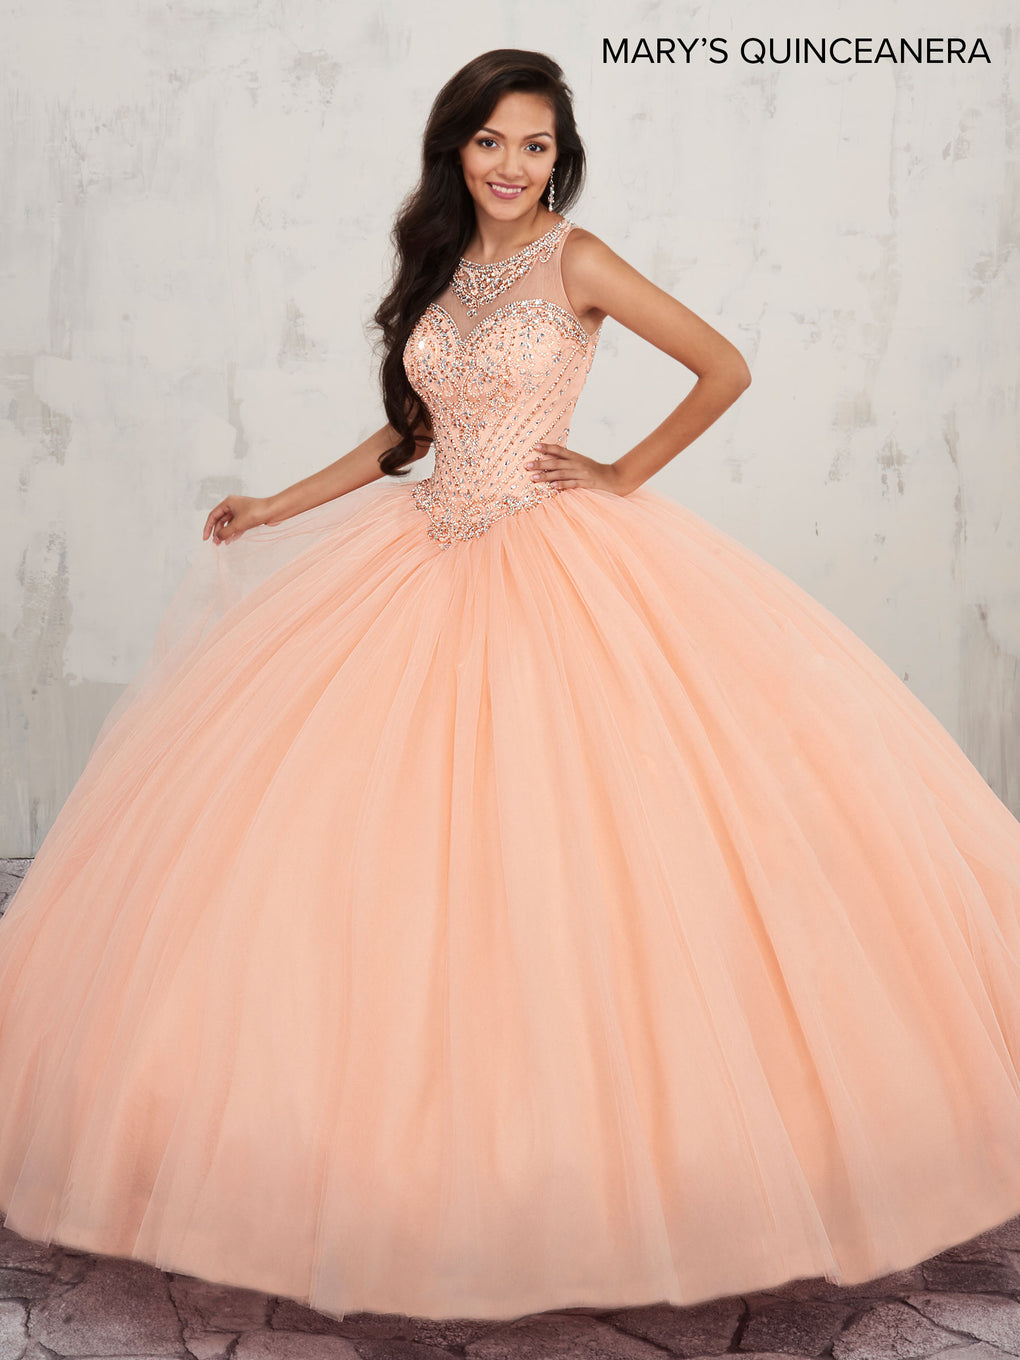 Marys Quinceanera Dresses in Peach or White Color